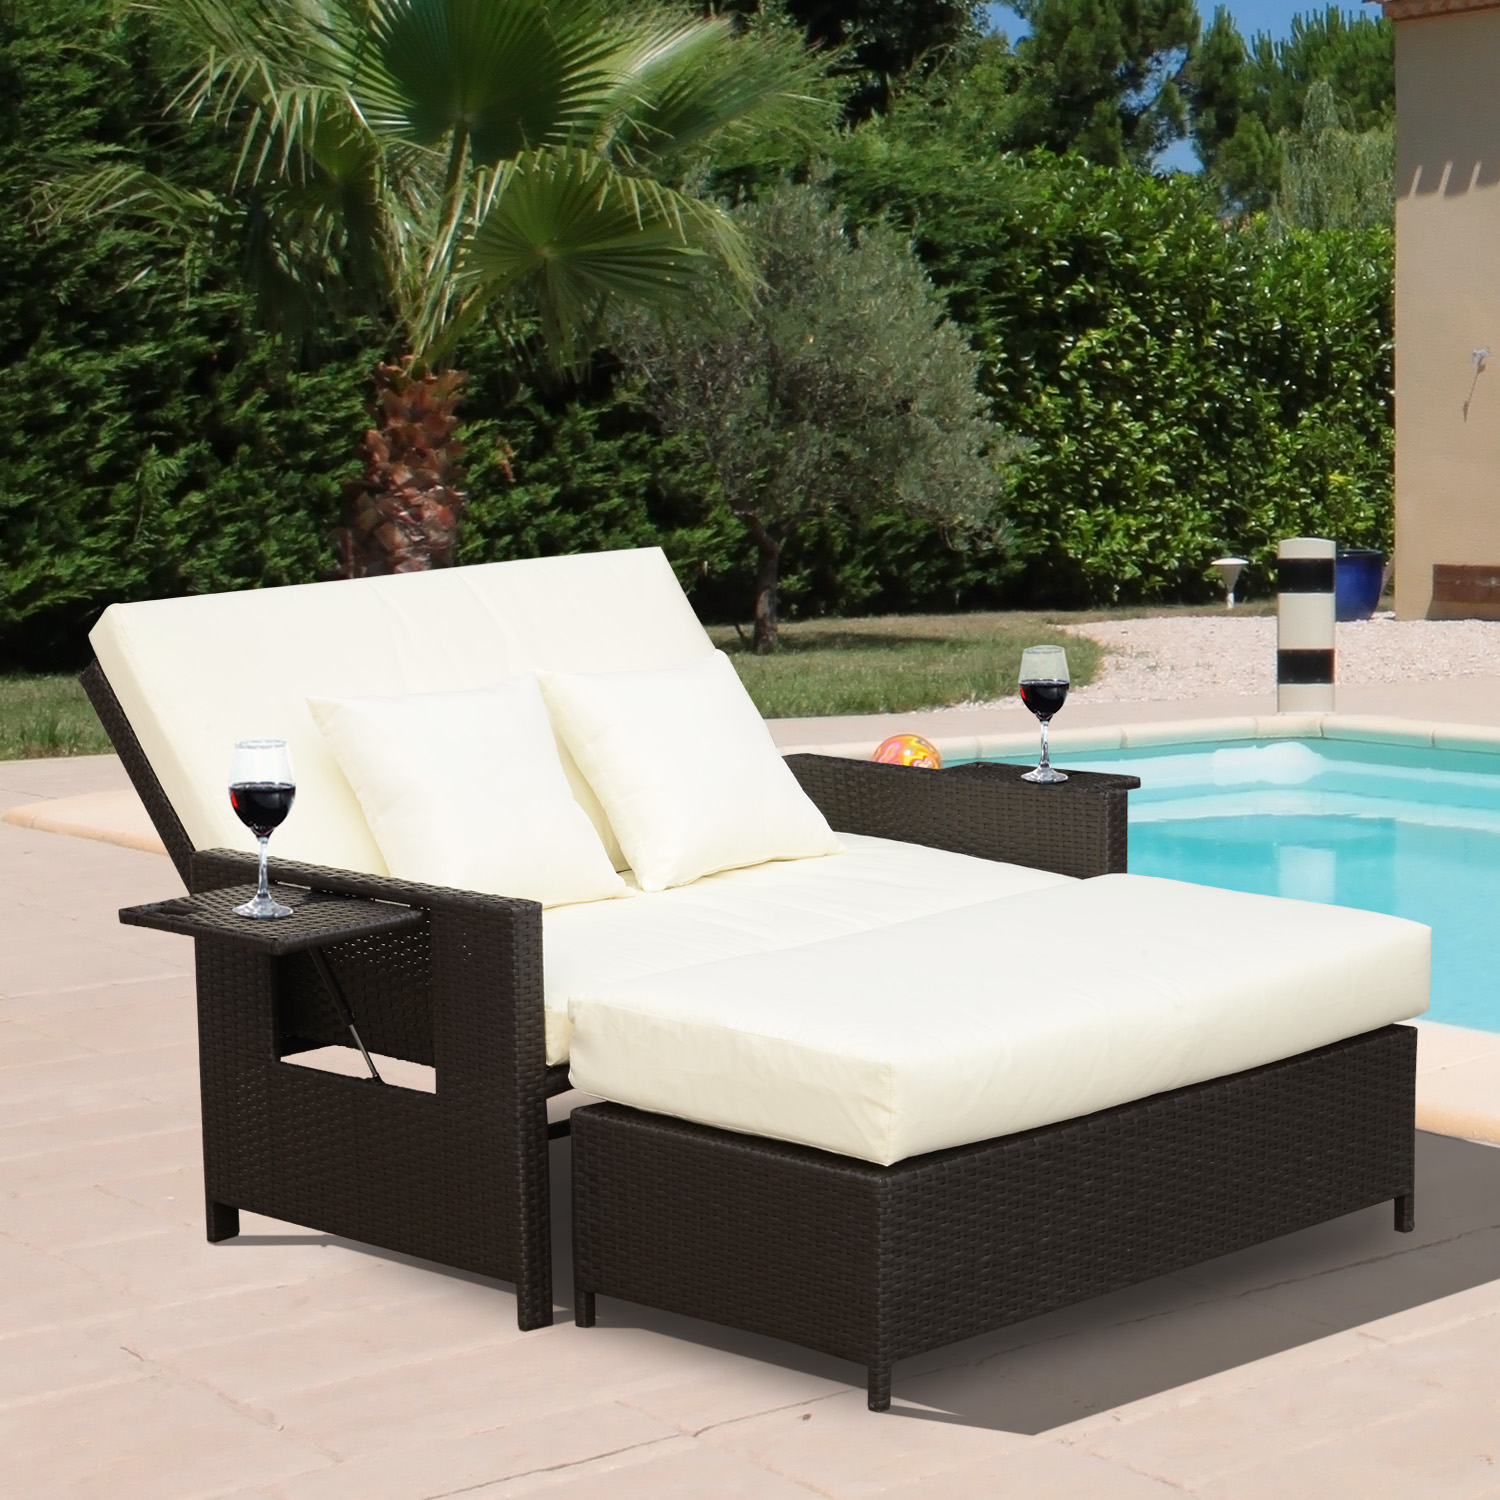 2pc Outdoor Rattan Wicker Chaise Lounge and Ottoman Set Double Seat Bench Chair & 2pc Outdoor Rattan Wicker Chaise Lounge and Ottoman Set Double Seat ...